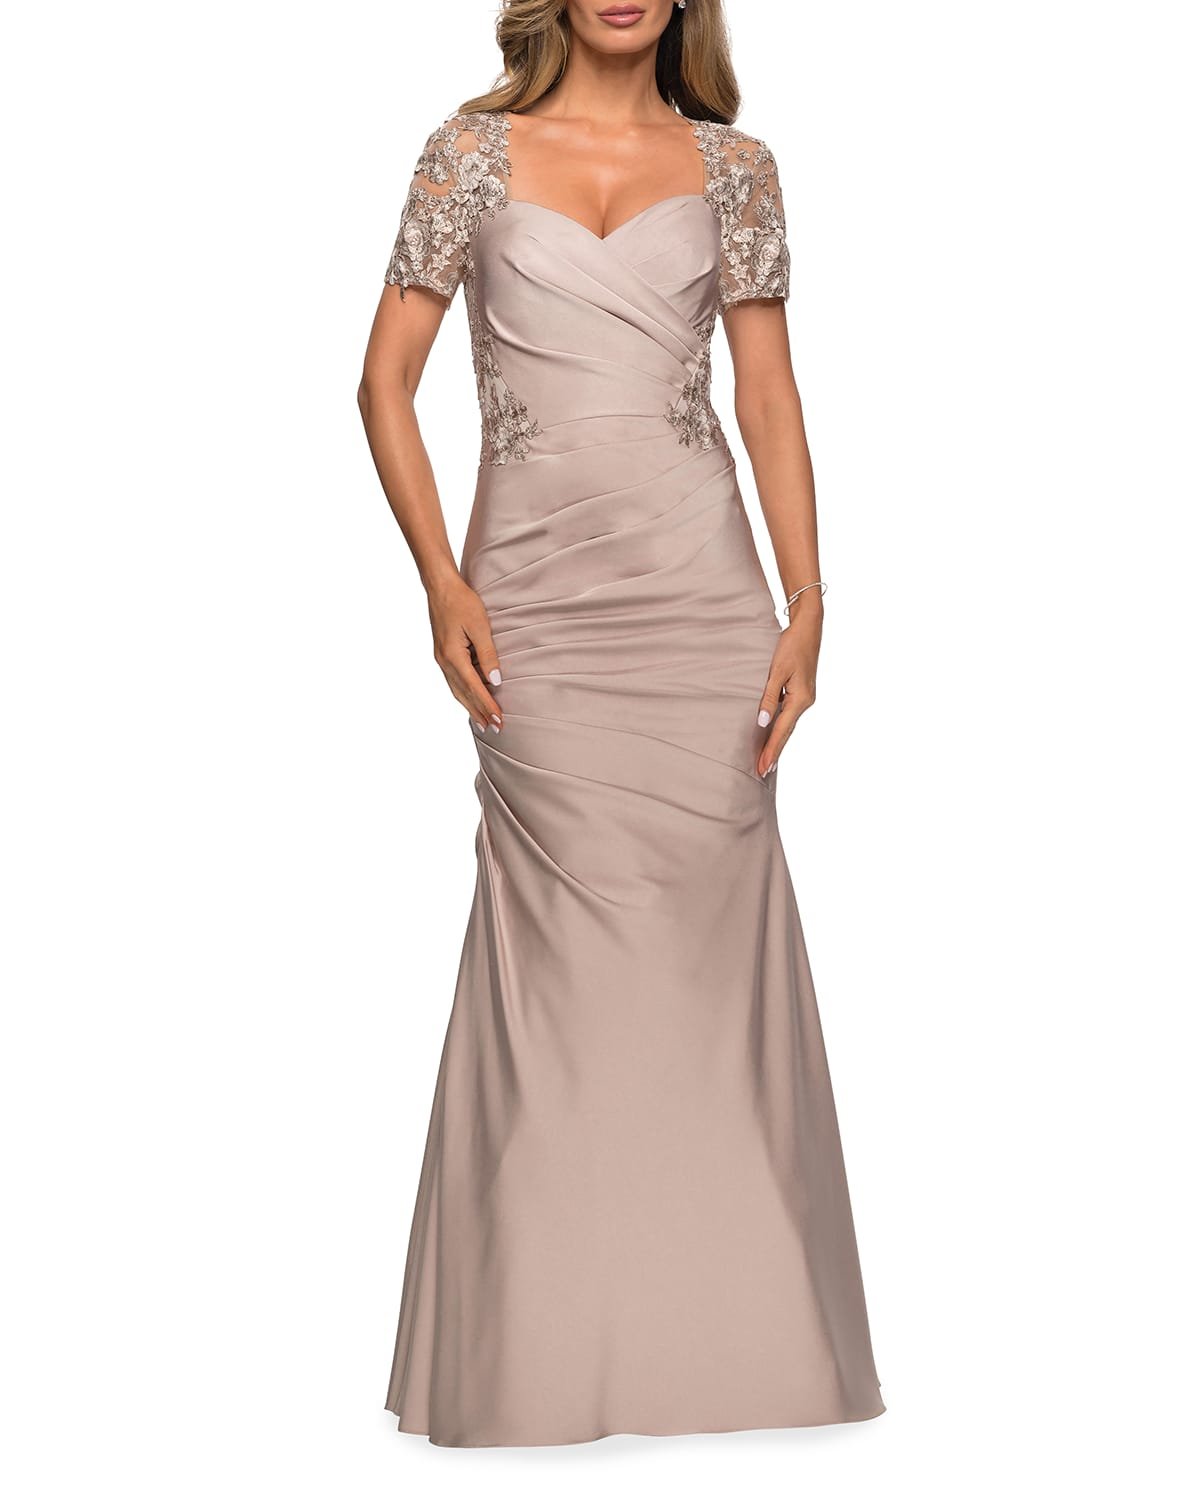 Sweetheart Ruched Satin Gown with Lace Back